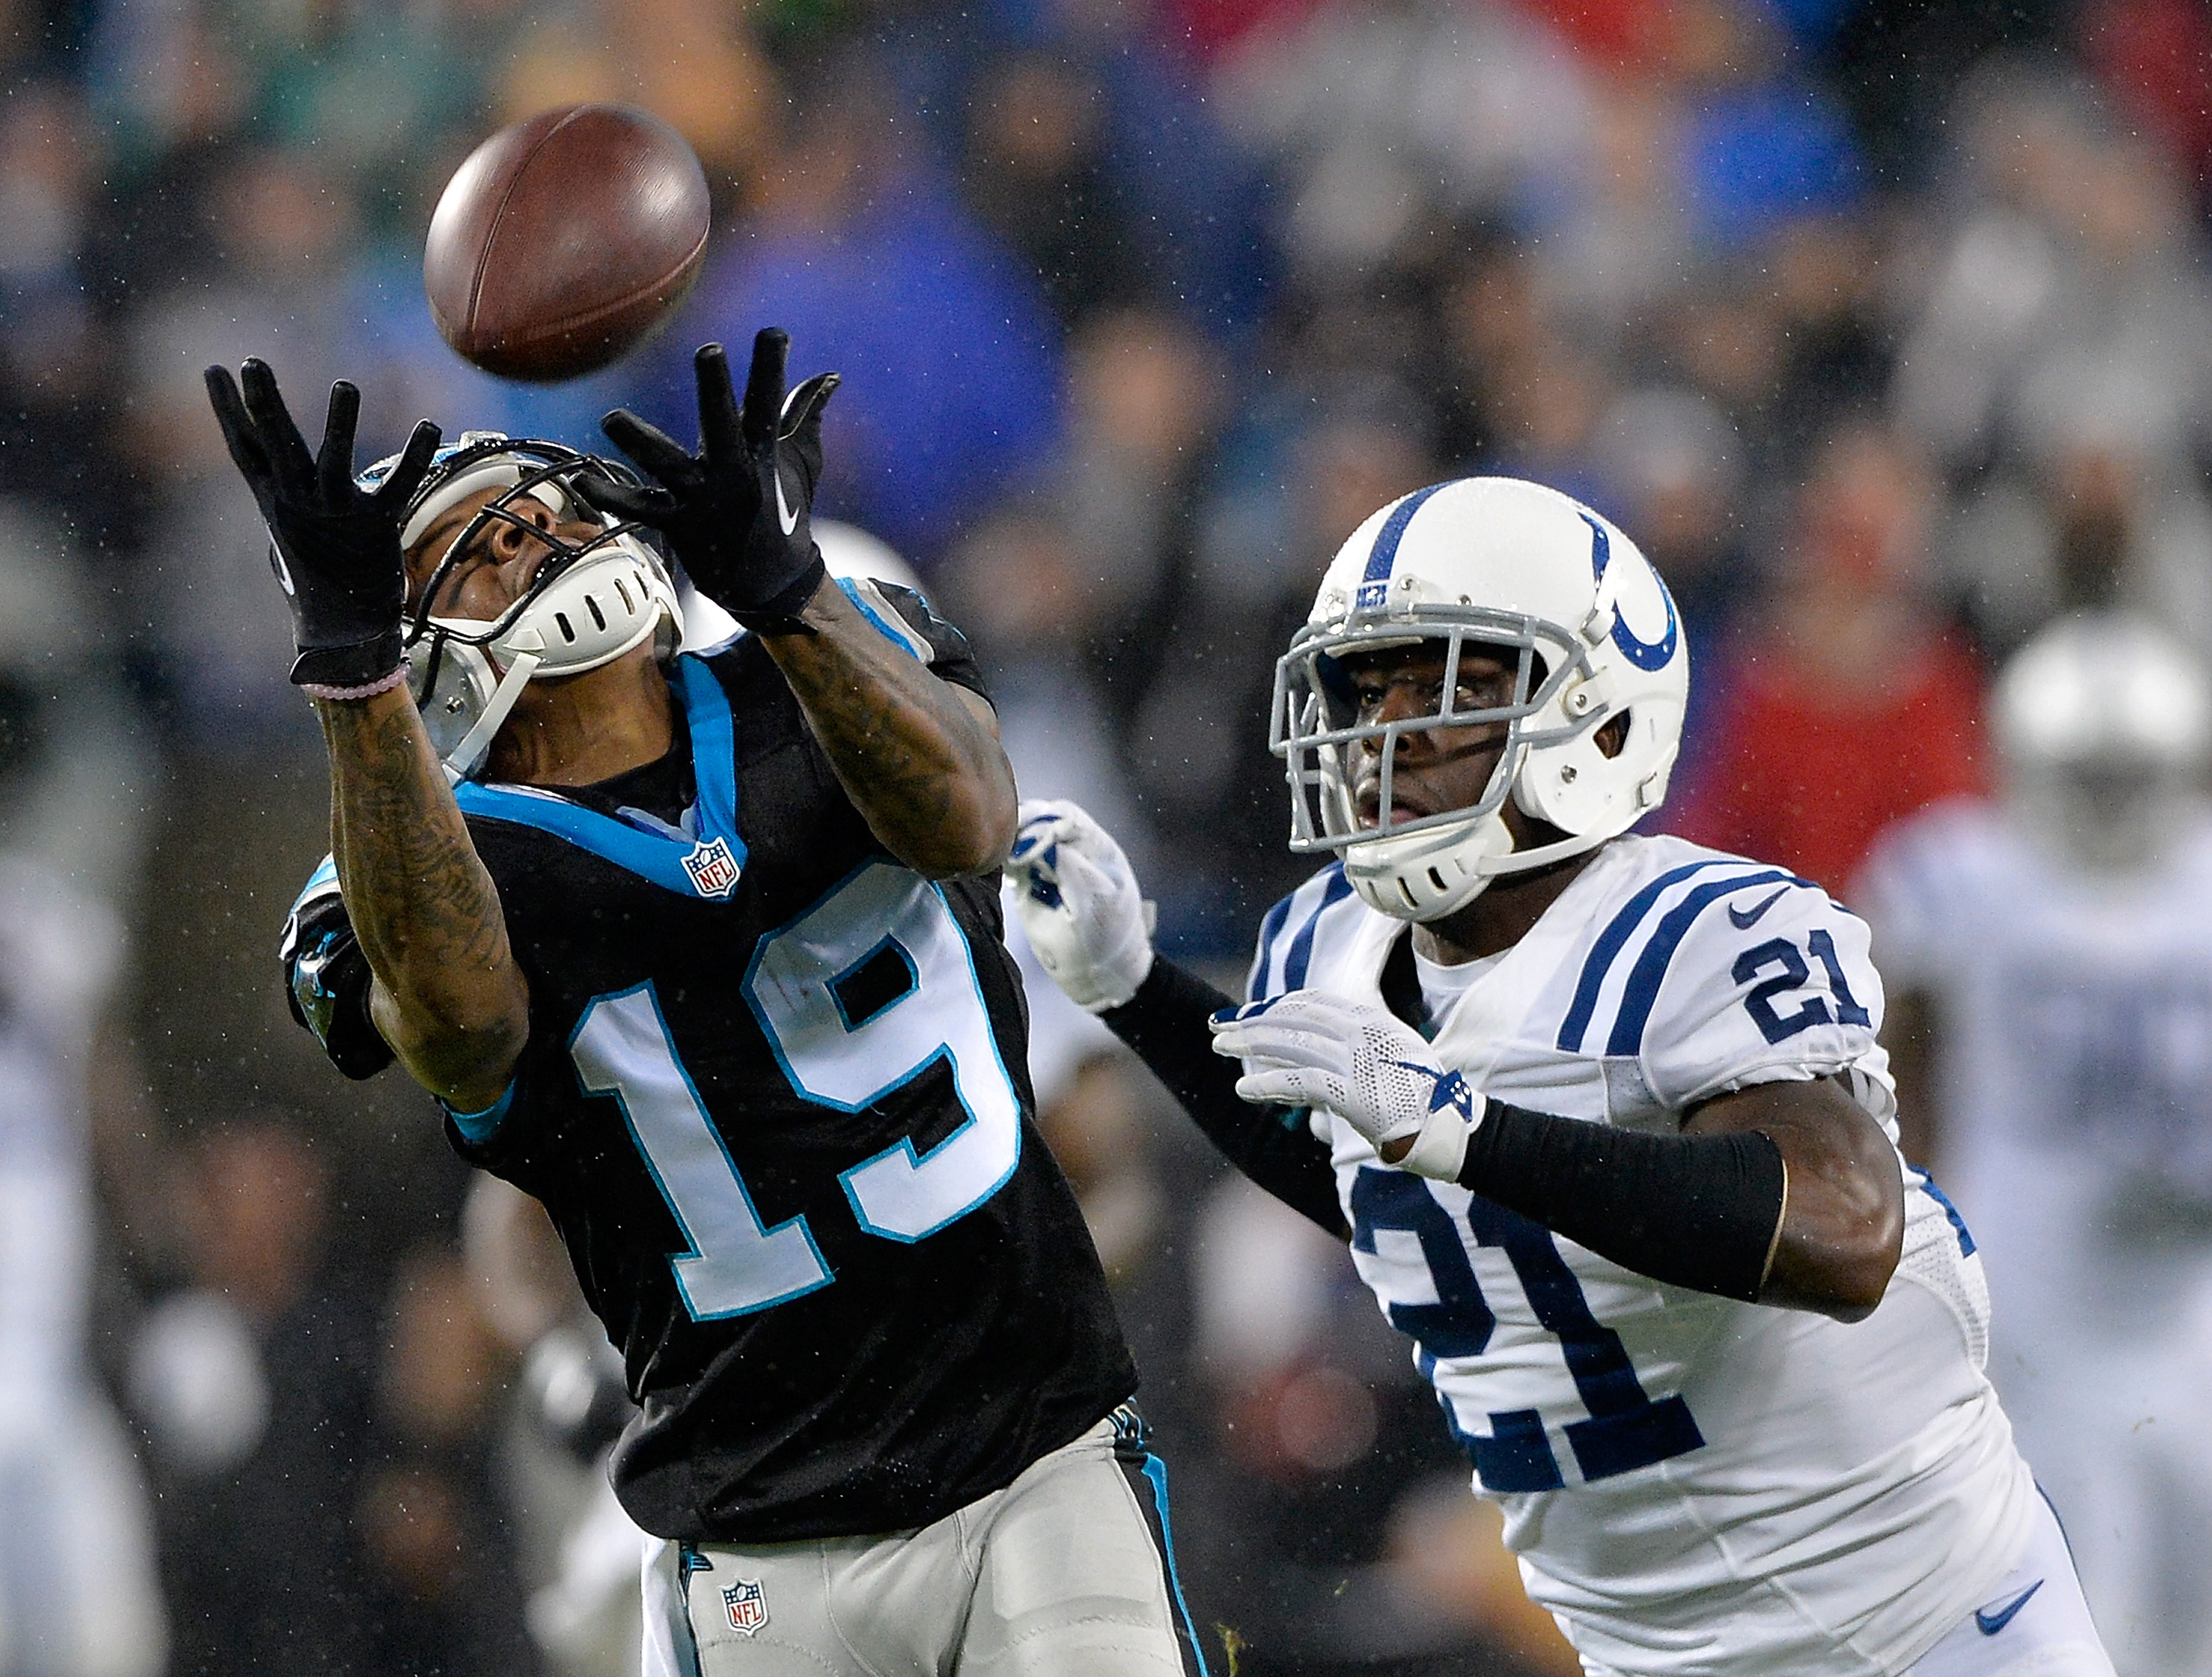 CHARLOTTE, NC - NOVEMBER 02:  Vontae Davis #21 of the Indianapolis Colts defends a pass to Ted Ginn #19 of the Carolina Panthers during their game at Bank of America Stadium on November 2, 2015 in Charlotte, North Carolina.  (Photo by Grant Halverson/Getty Images)